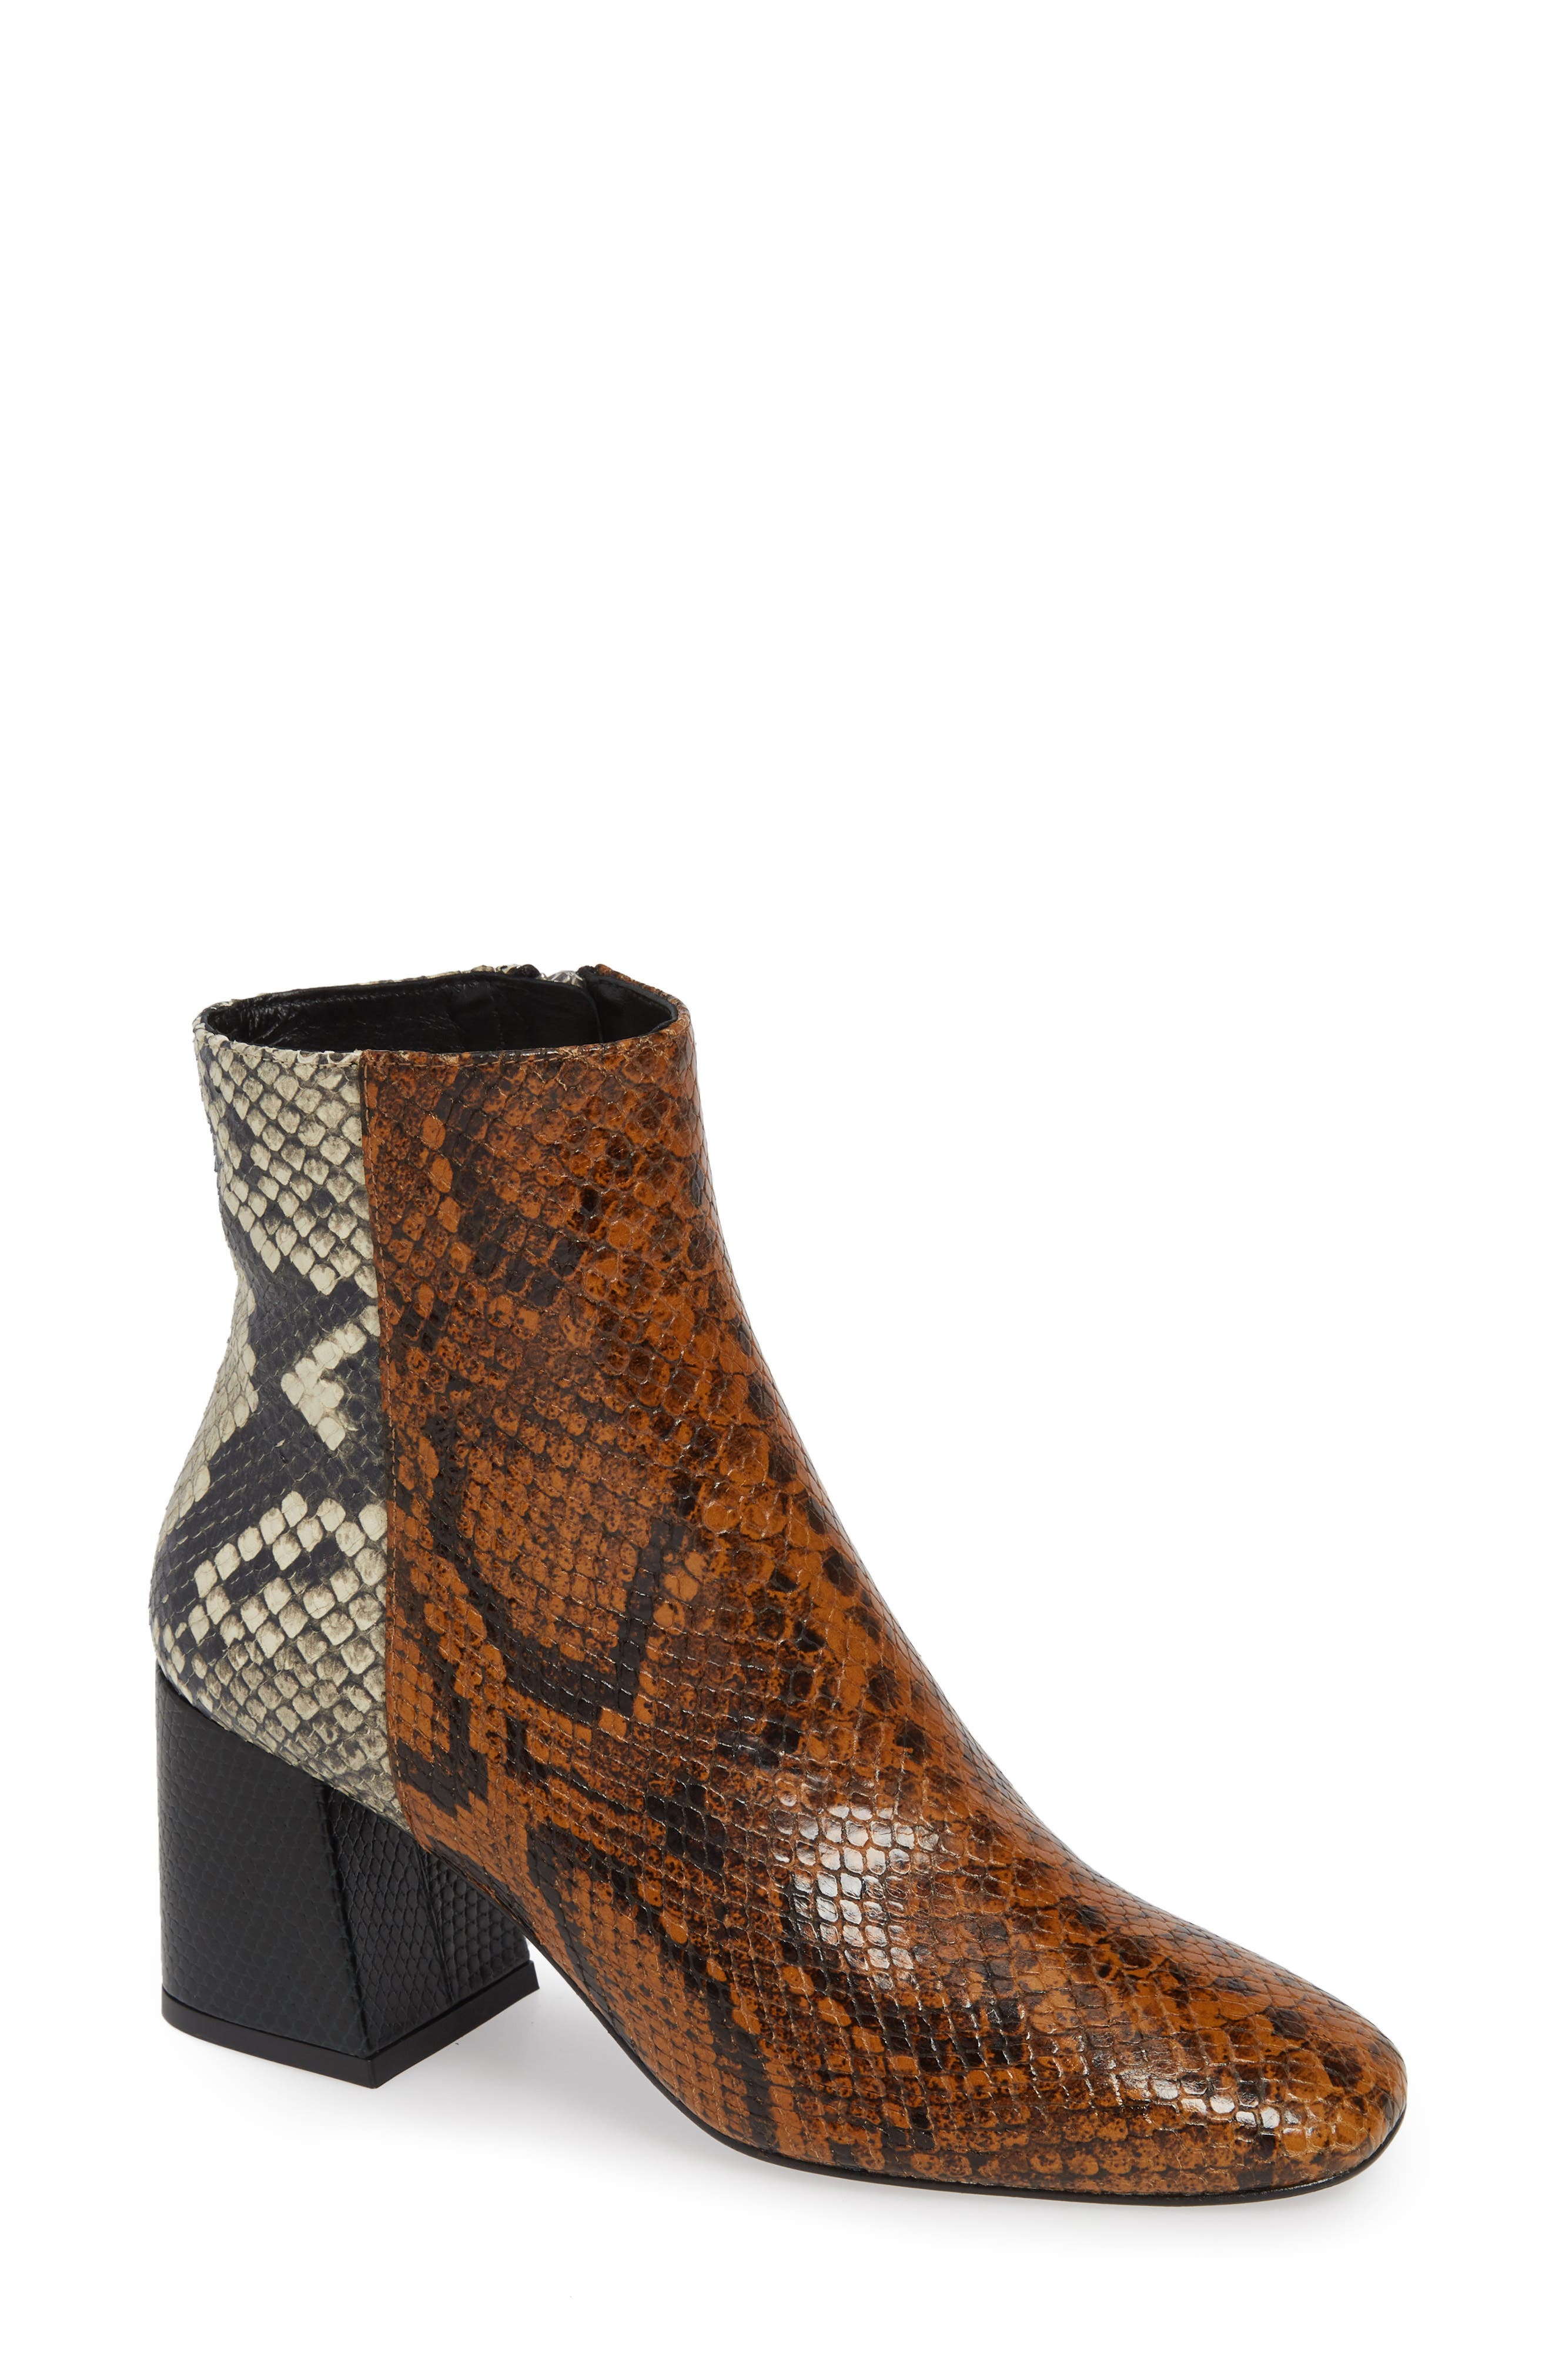 FREDA SALVADOR Charm Reptile Embossed Bootie in Brown Snake Embossed Leather